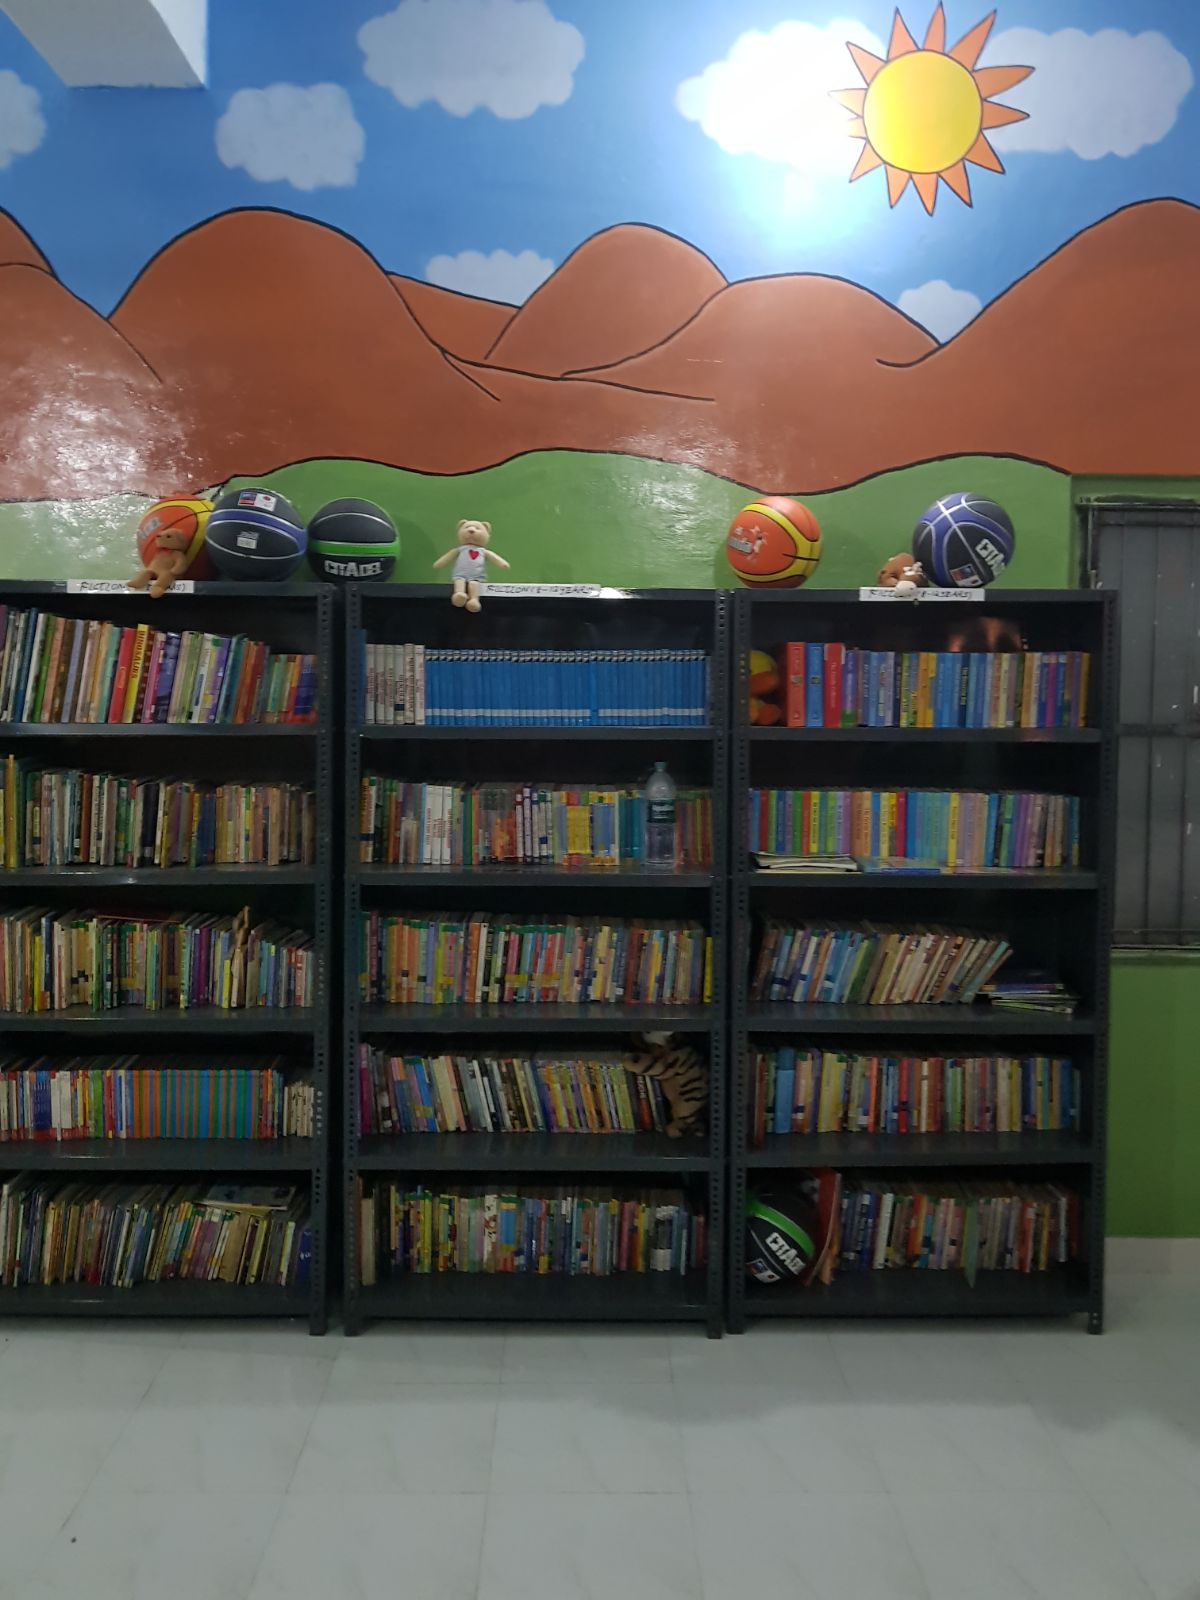 The volunteers of YSA developed a full-fledged library in the school and stocked it with various books.